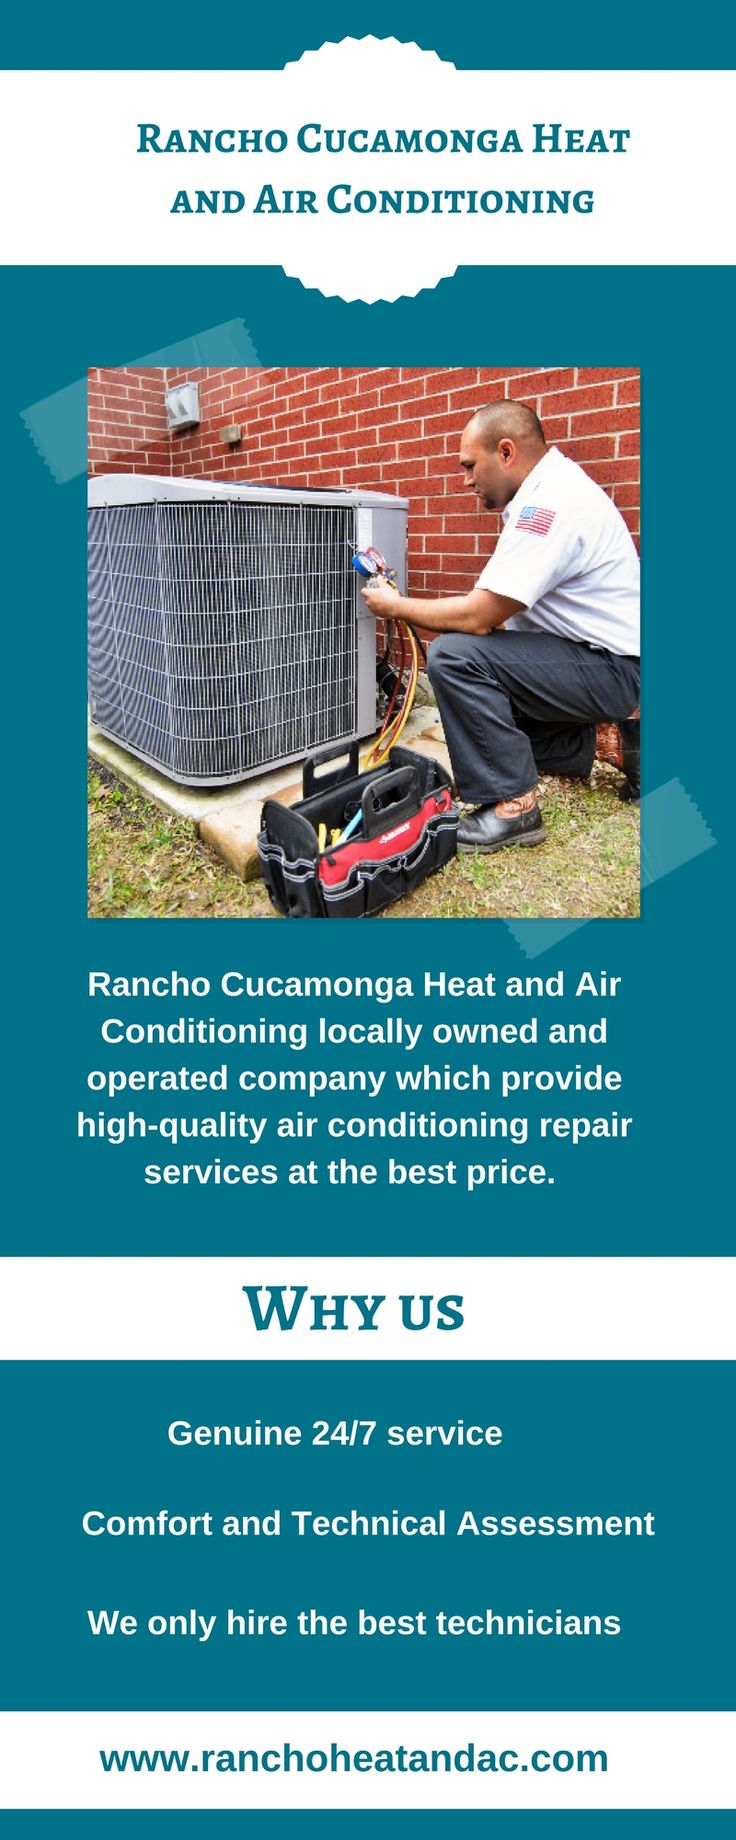 Rancho Cucamonga Heat and Air Conditioning offer professional heating and air conditioning services in Rancho Cucamonga and all the Inland Empire